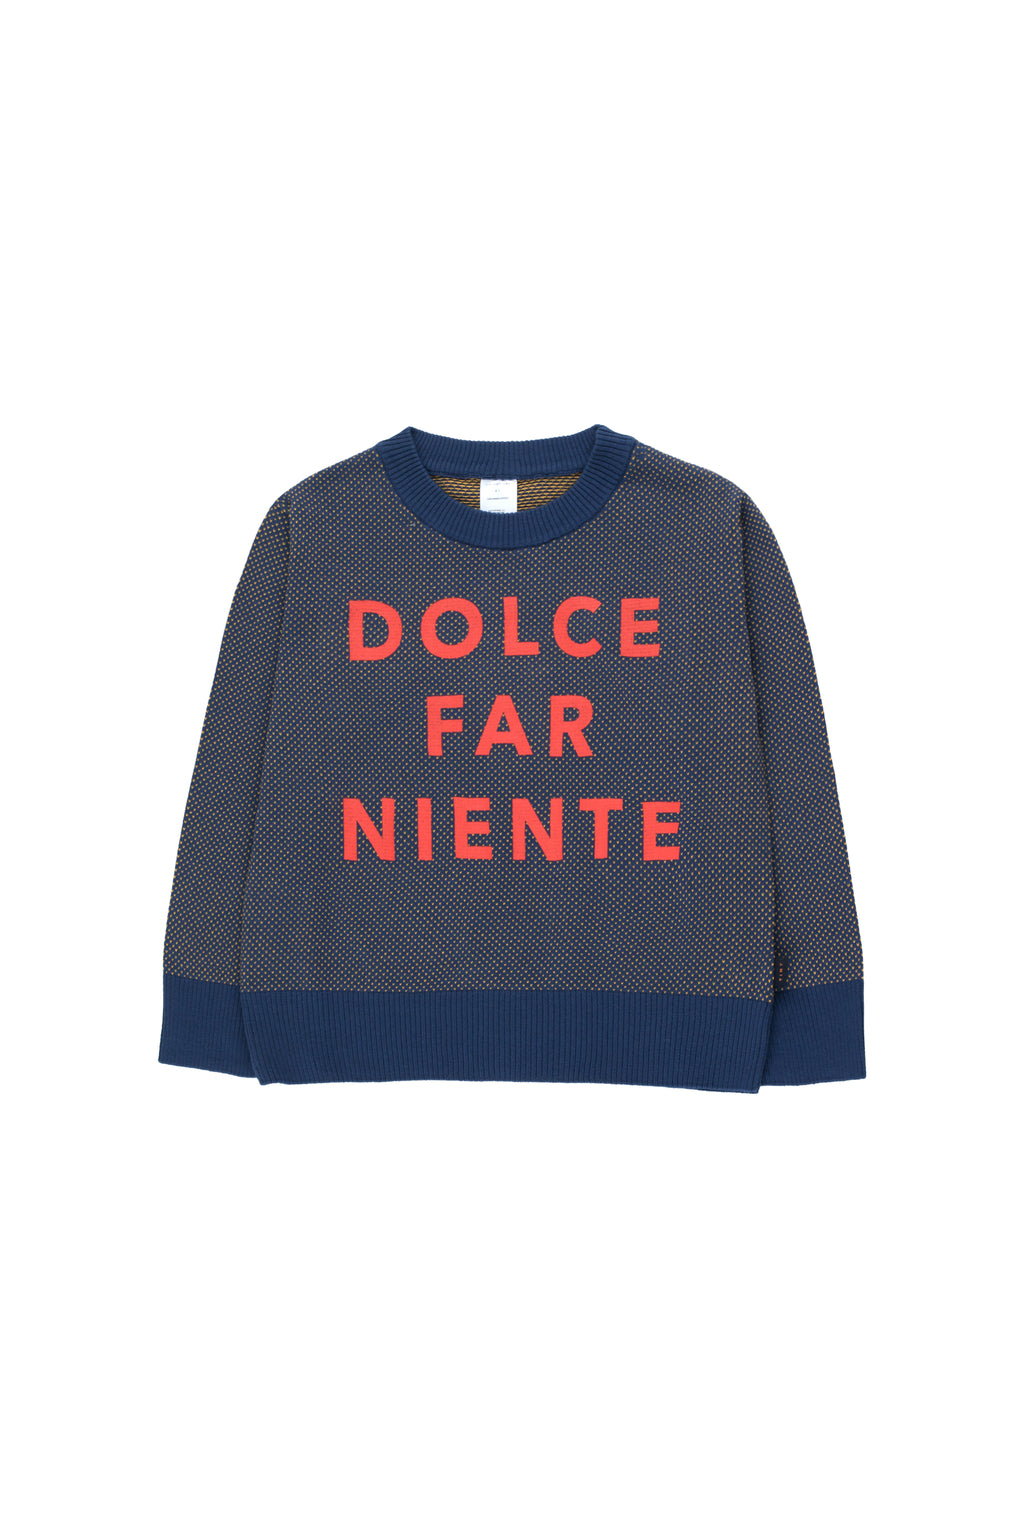 Tiny Cottons Dolce Far Niente Sweater Light Navy/Gold